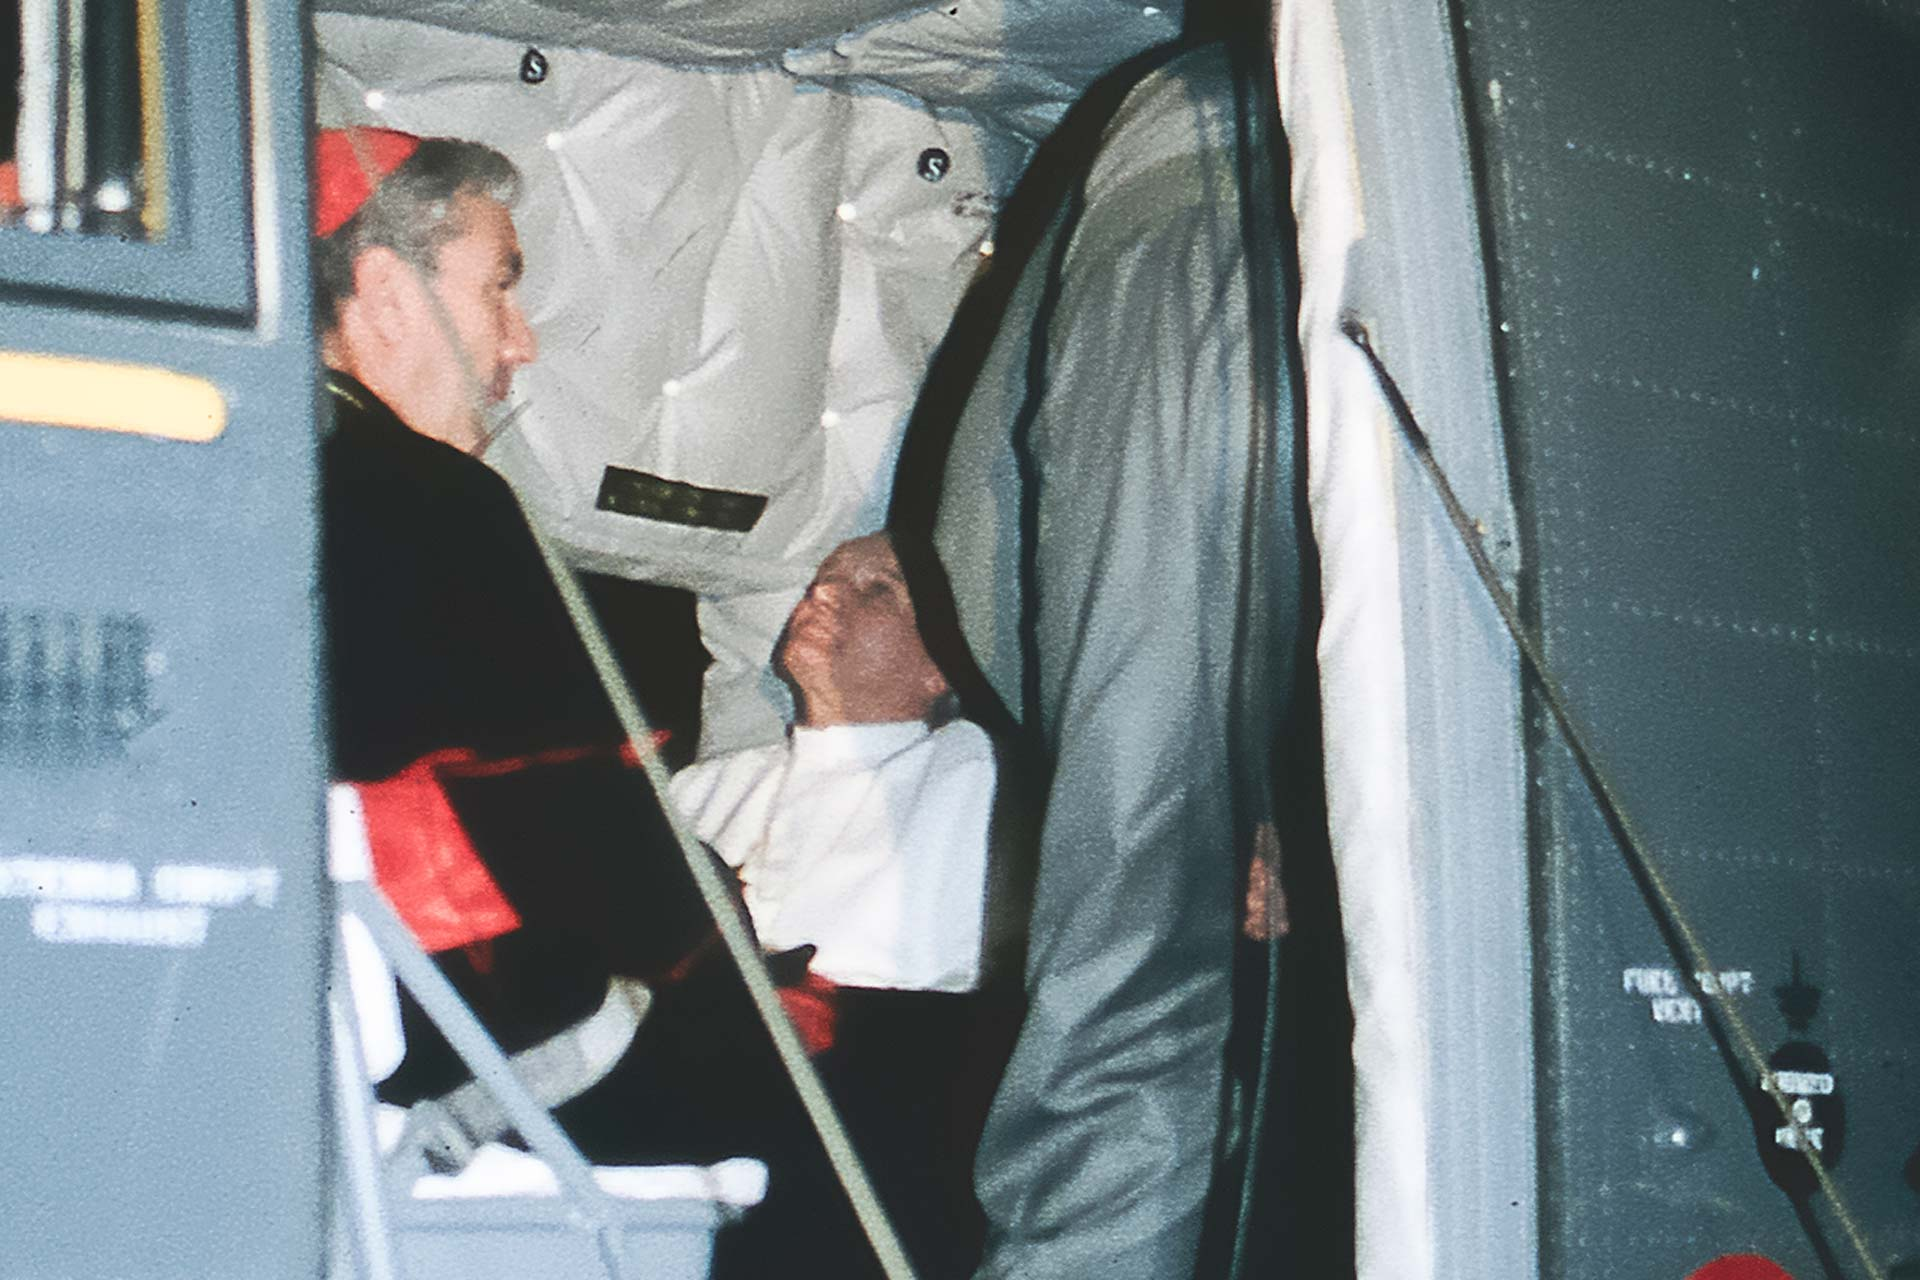 The Pope in the helicopter together with Cardinal Salvatore Pappalardo, just before leaving Palermo.